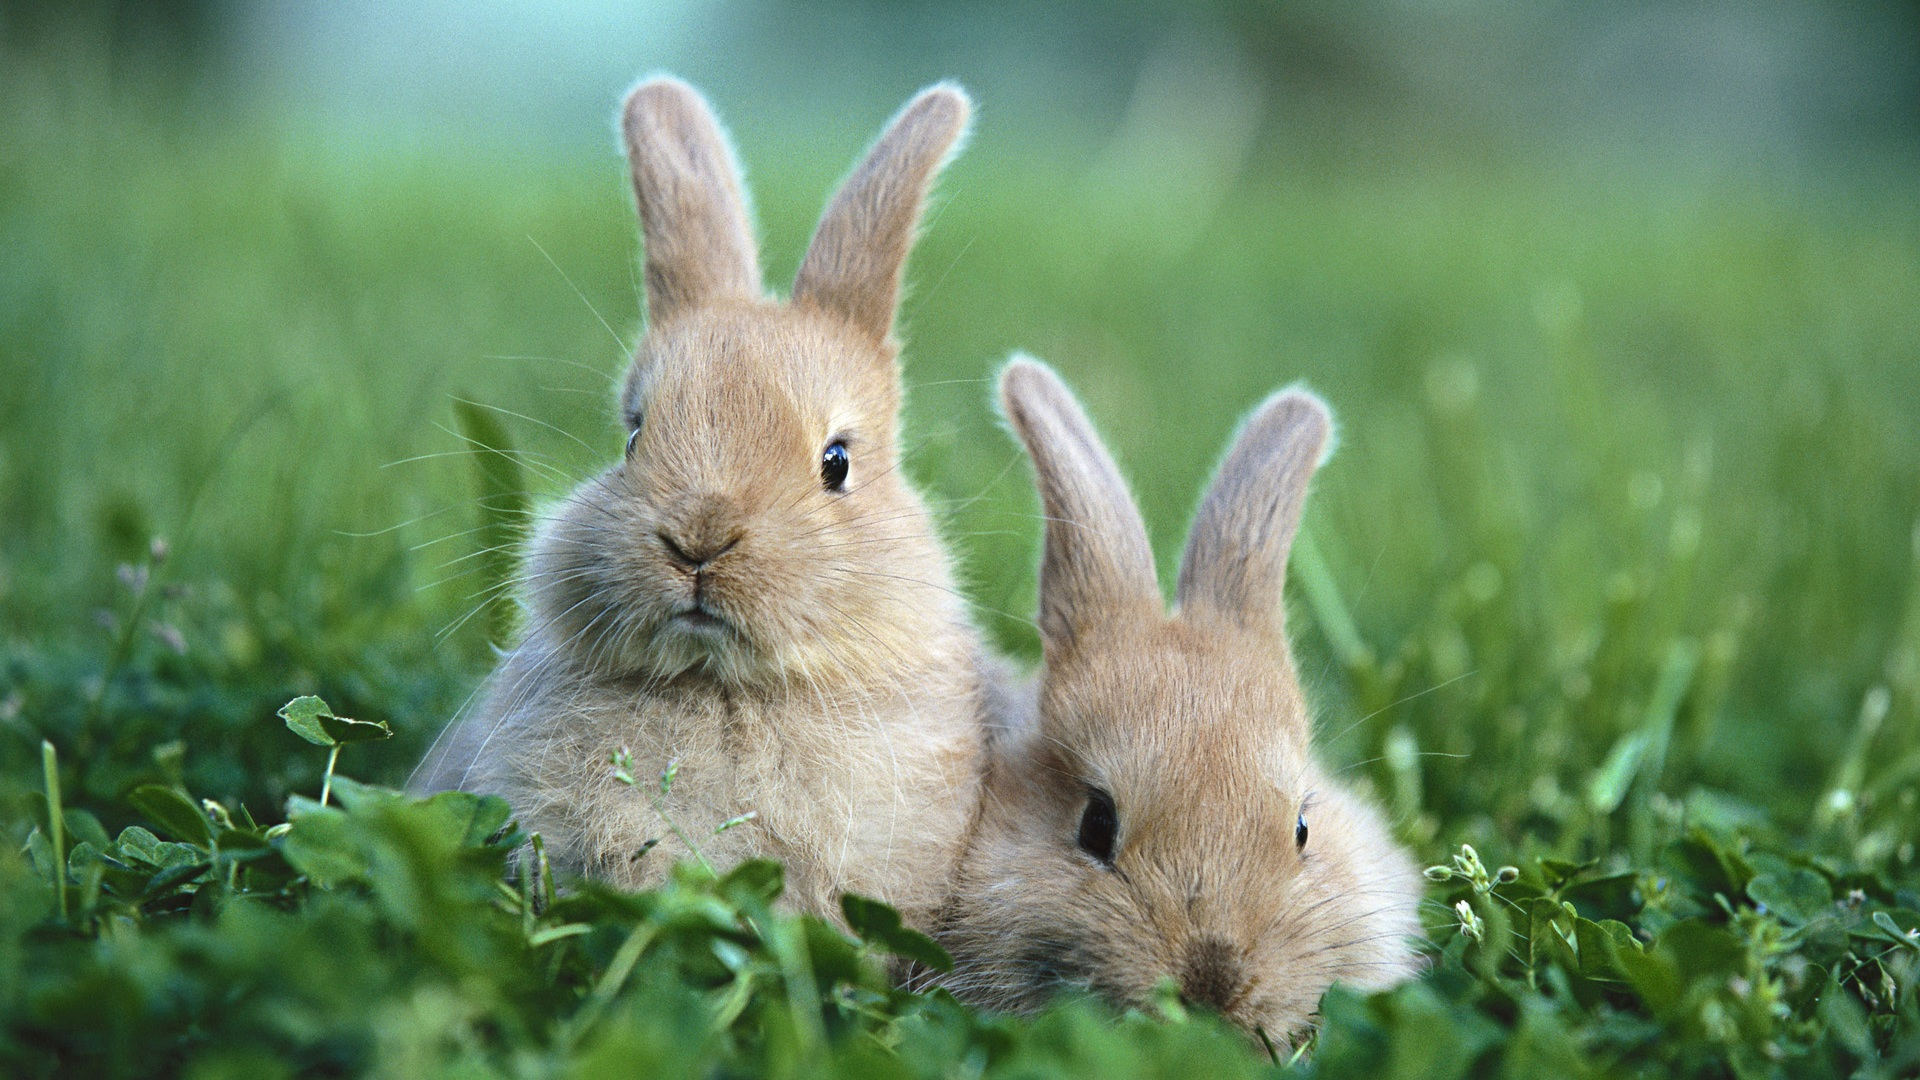 Bunnies Wallpaper Widescreen HD